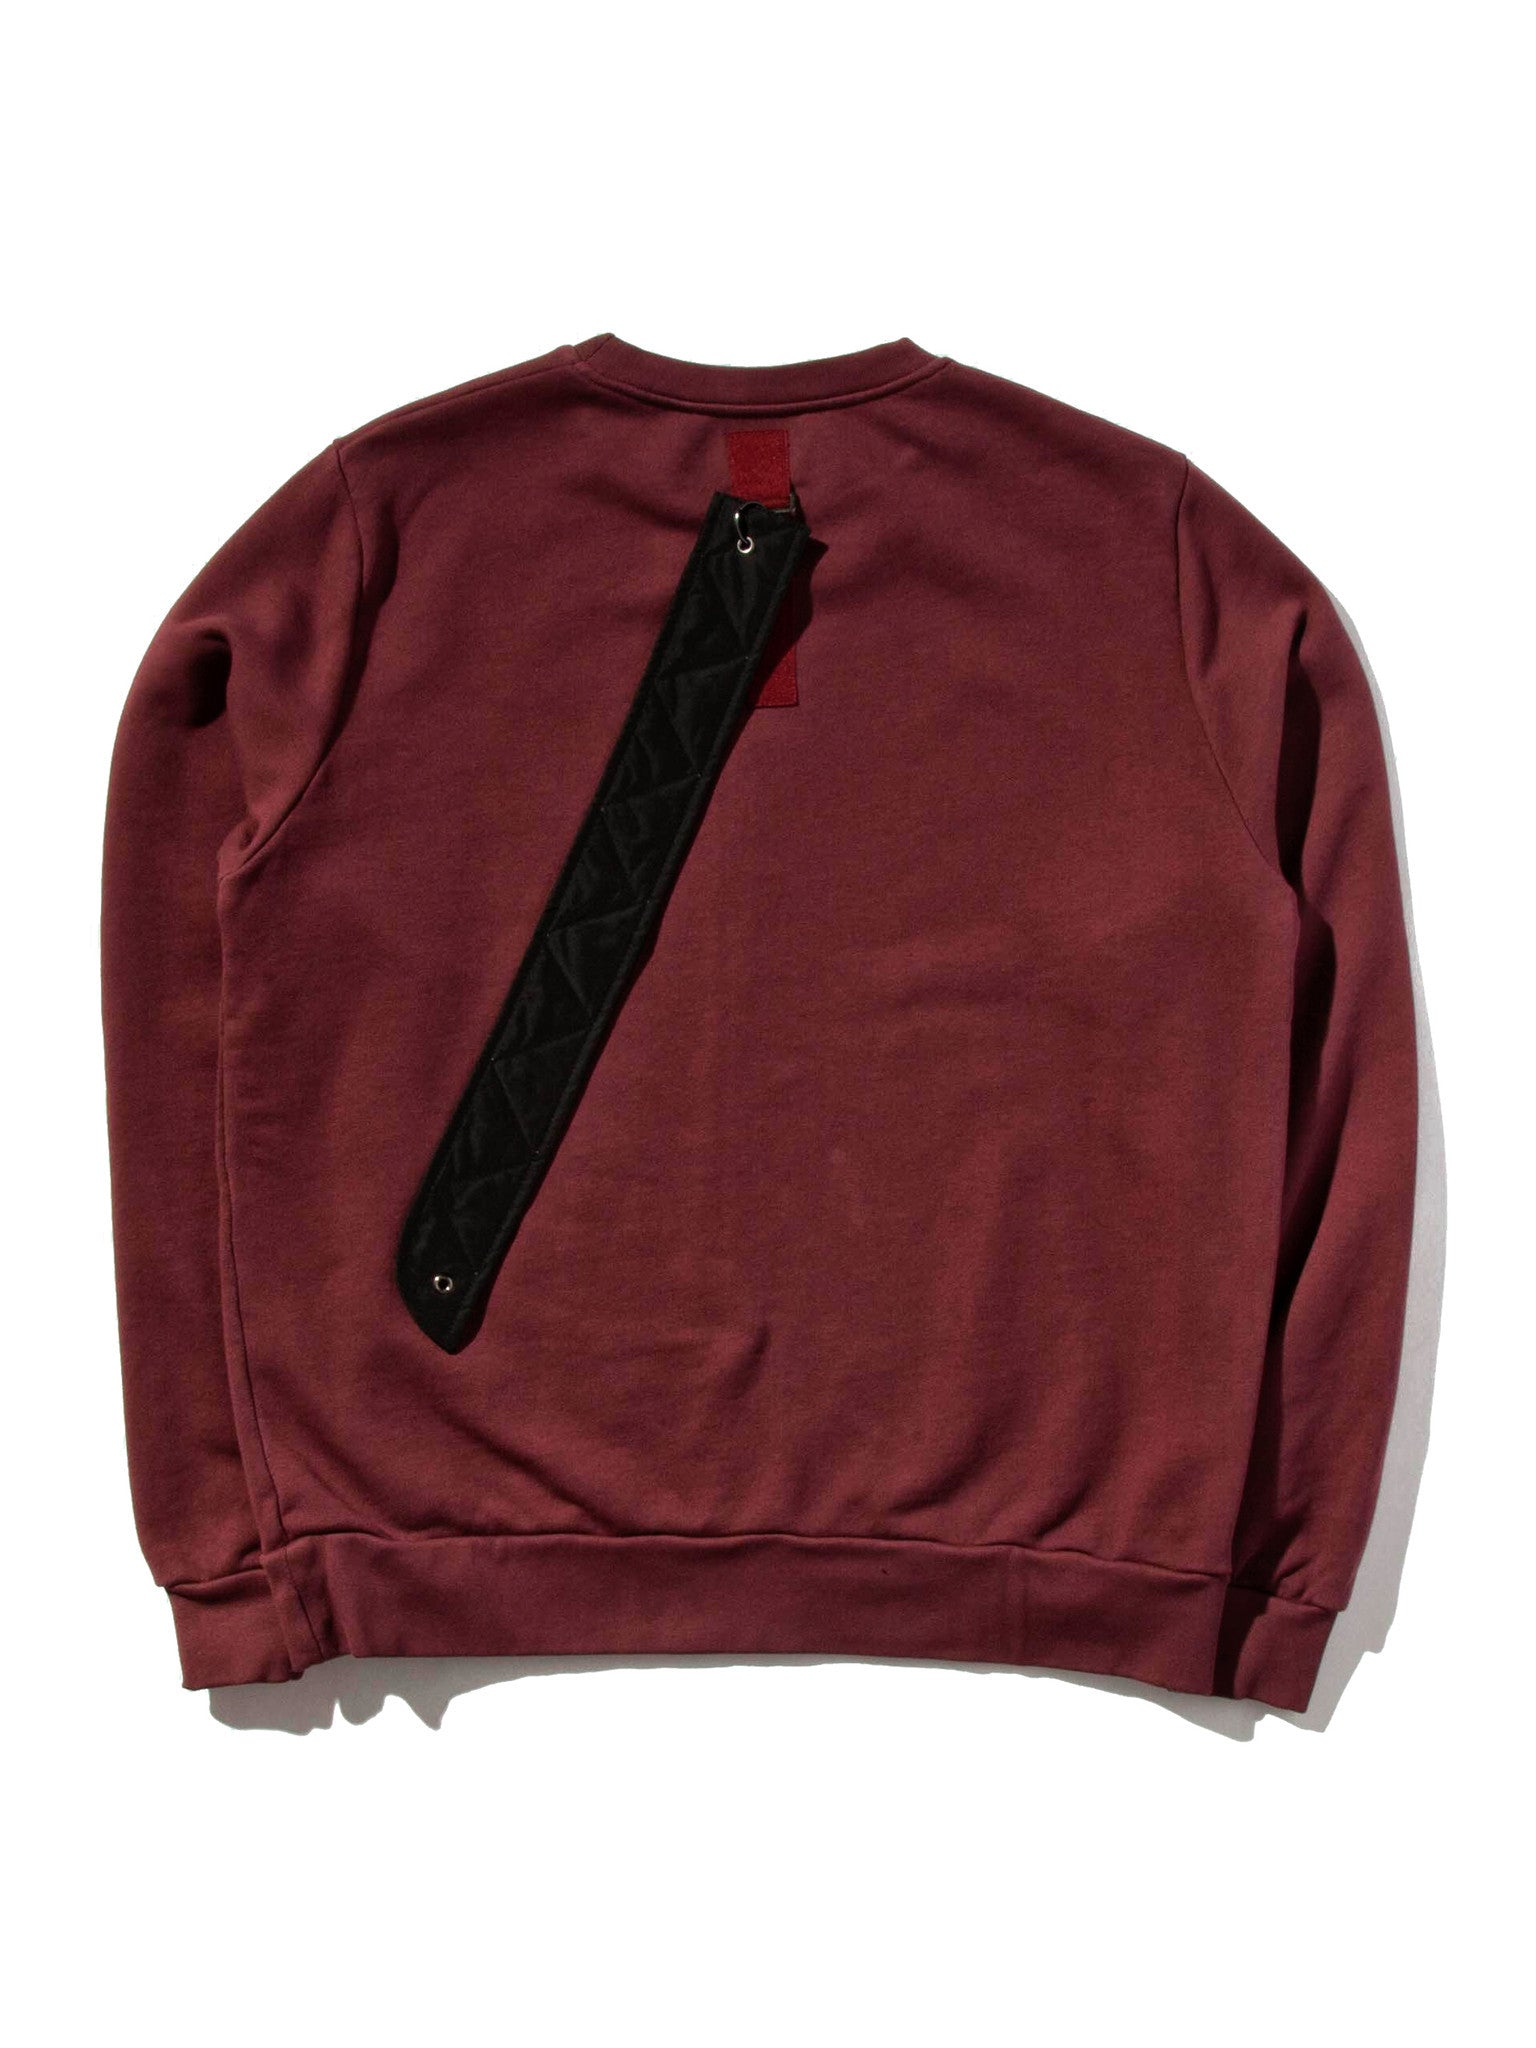 Burgundy Heavy Jersey Sweater Boxy Fit (Detachable Strap) 5